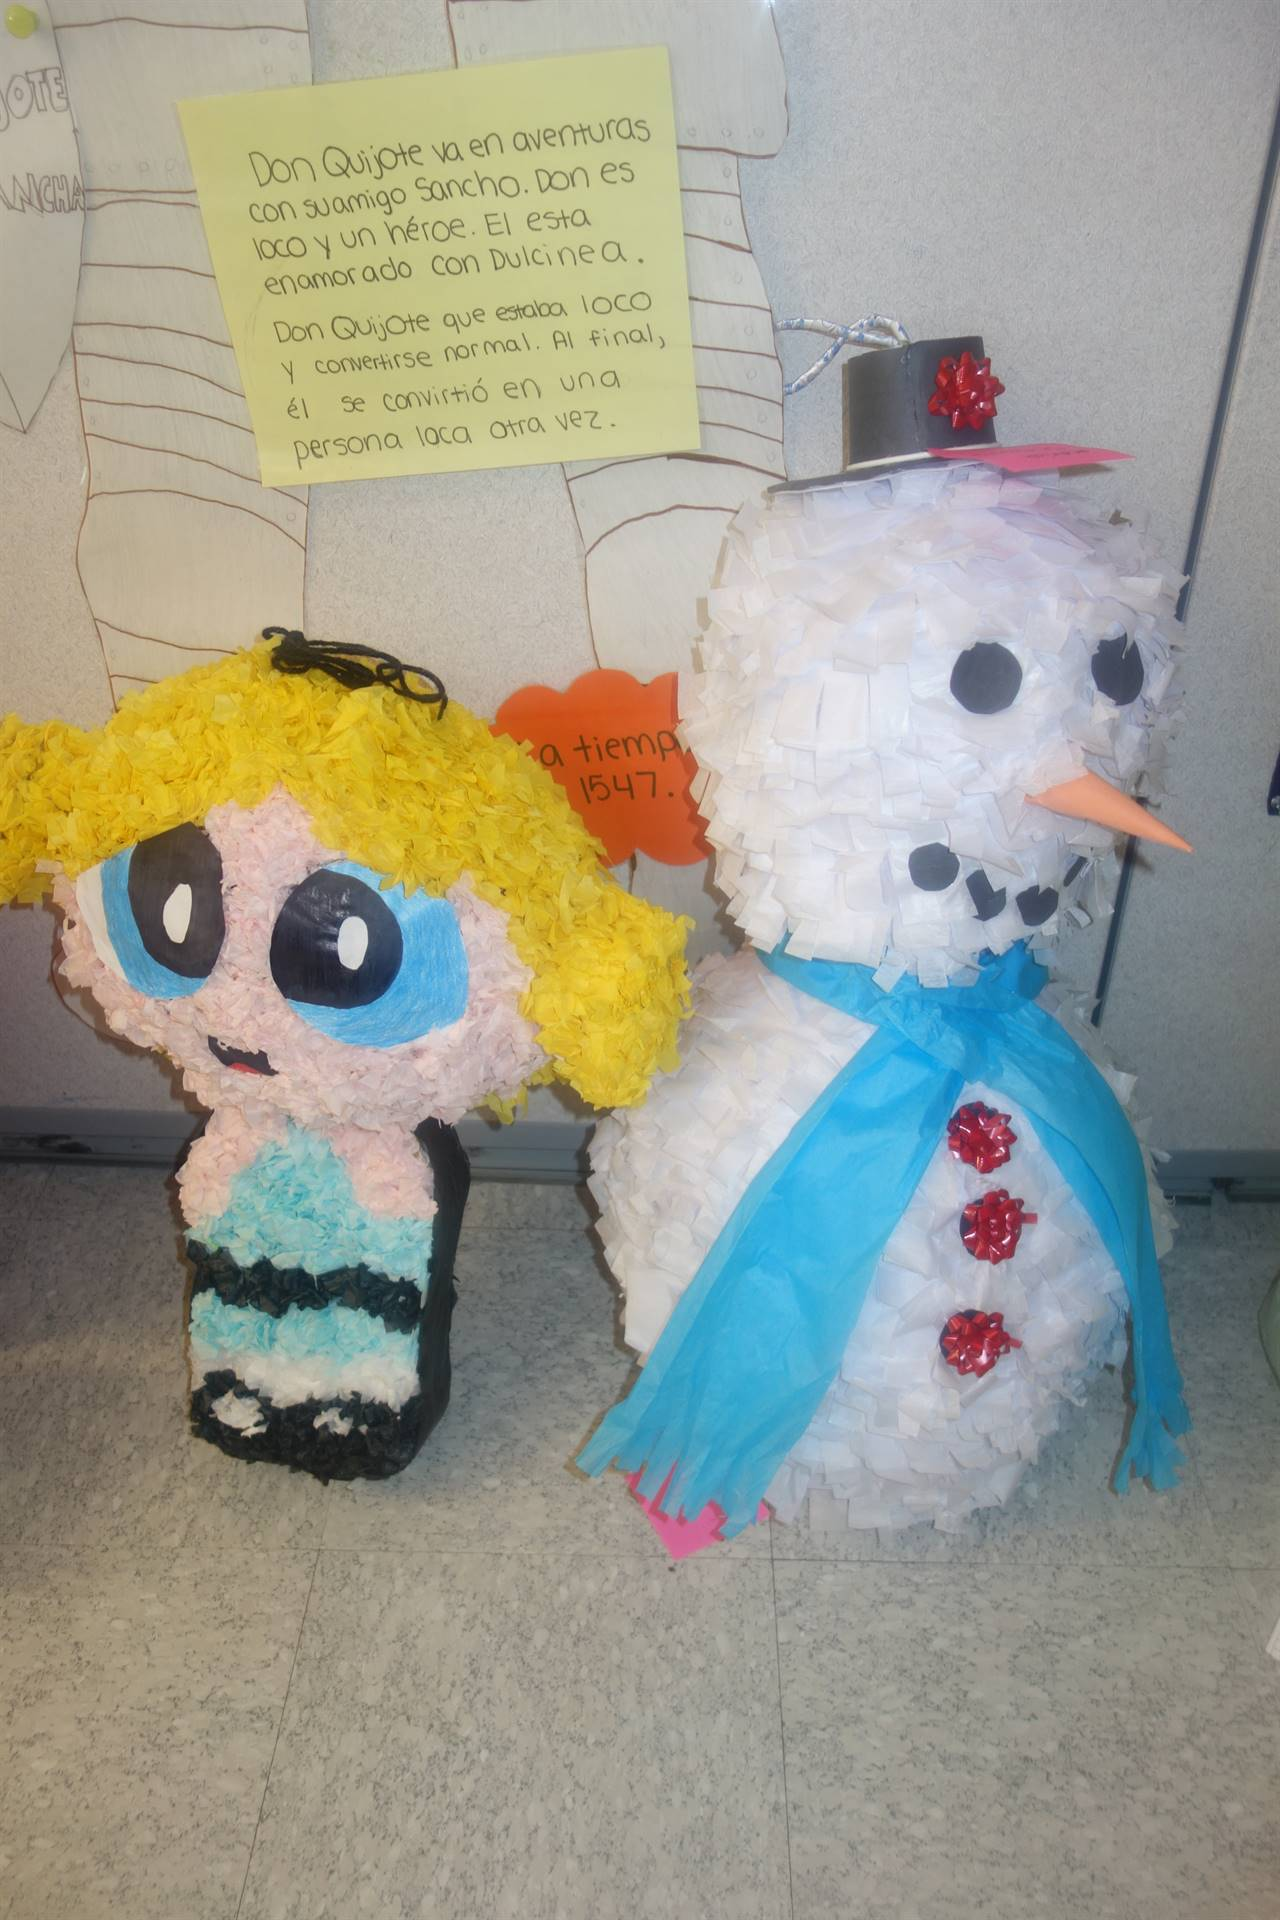 Powder Puff Girl and Frosty the Snowman pinatas